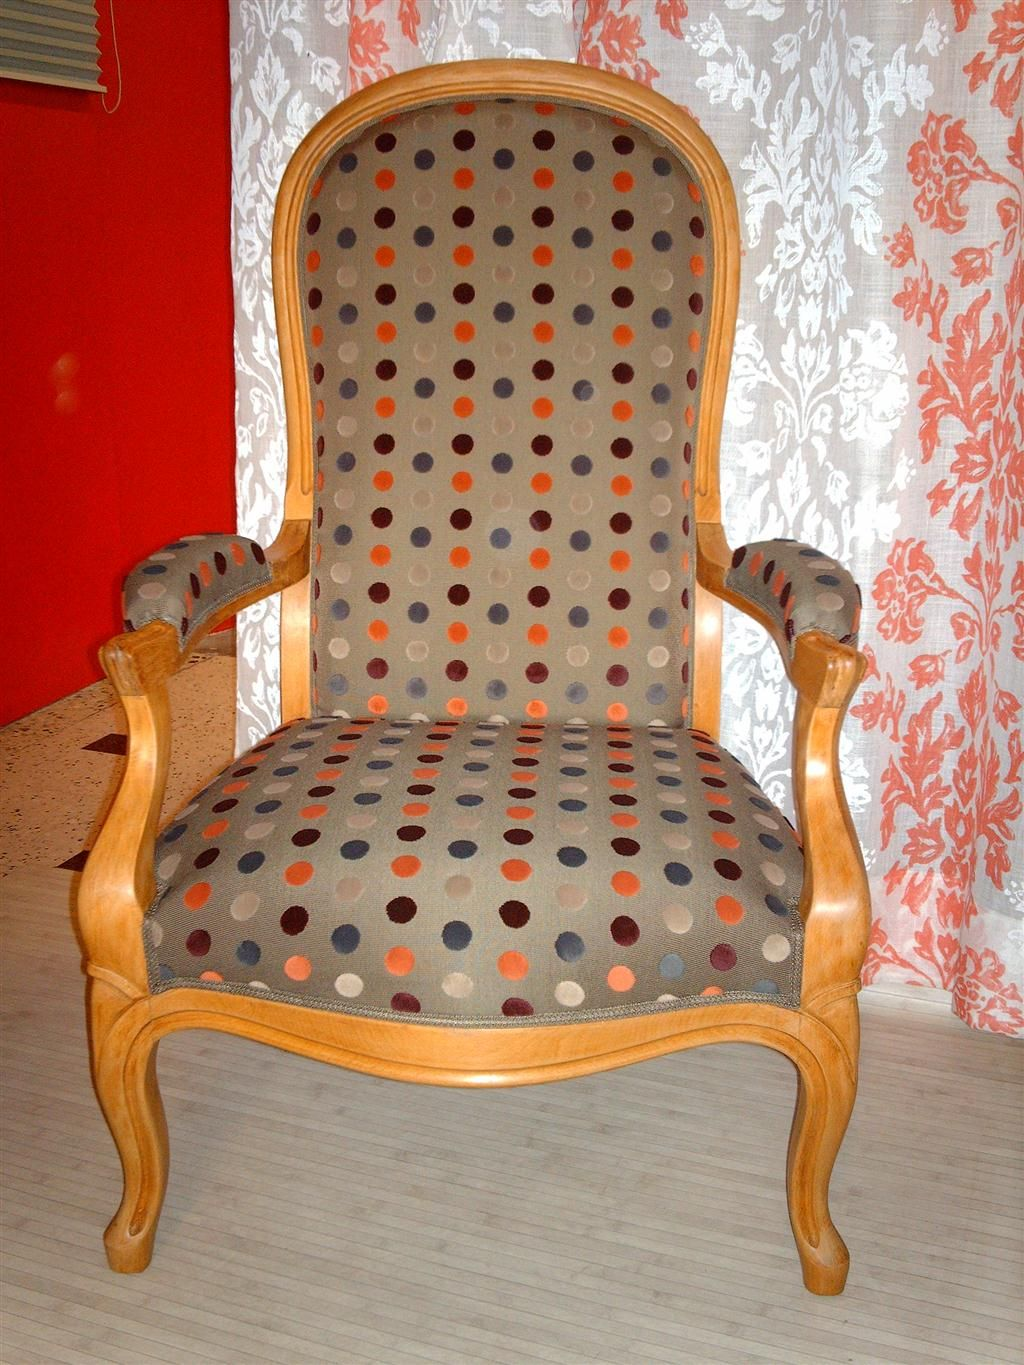 Pin by cathy m melchior on fauteuil voltaire fauteuil voltaire fauteuil mobilier de salon - Meuble voltaire ...